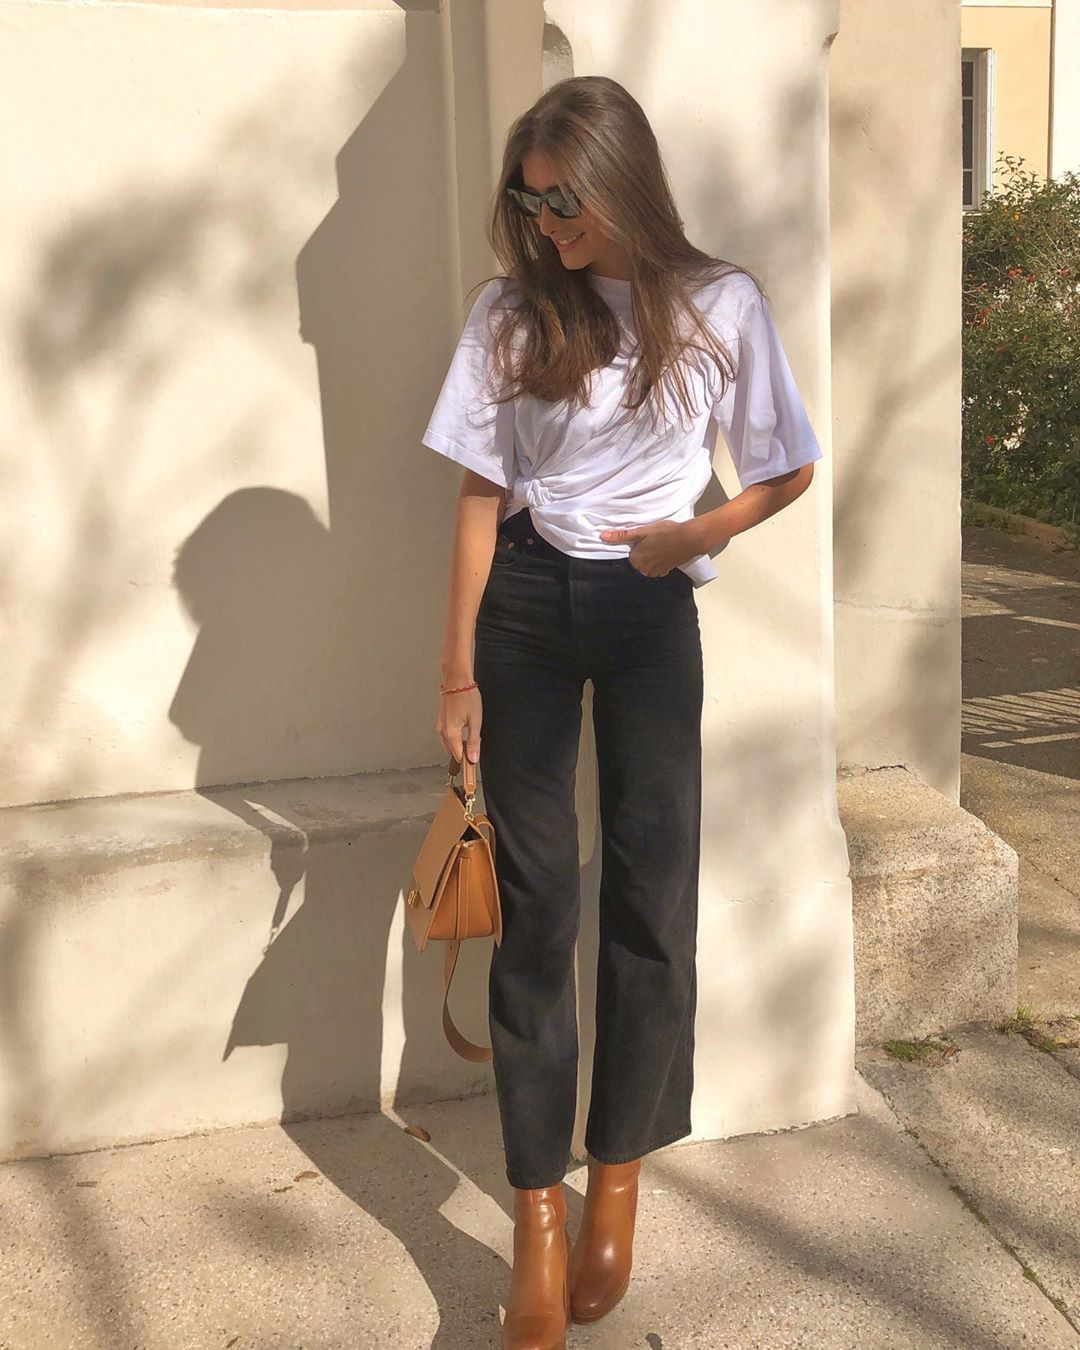 The French-Girl Way to Wear Jeans and a T-shirt